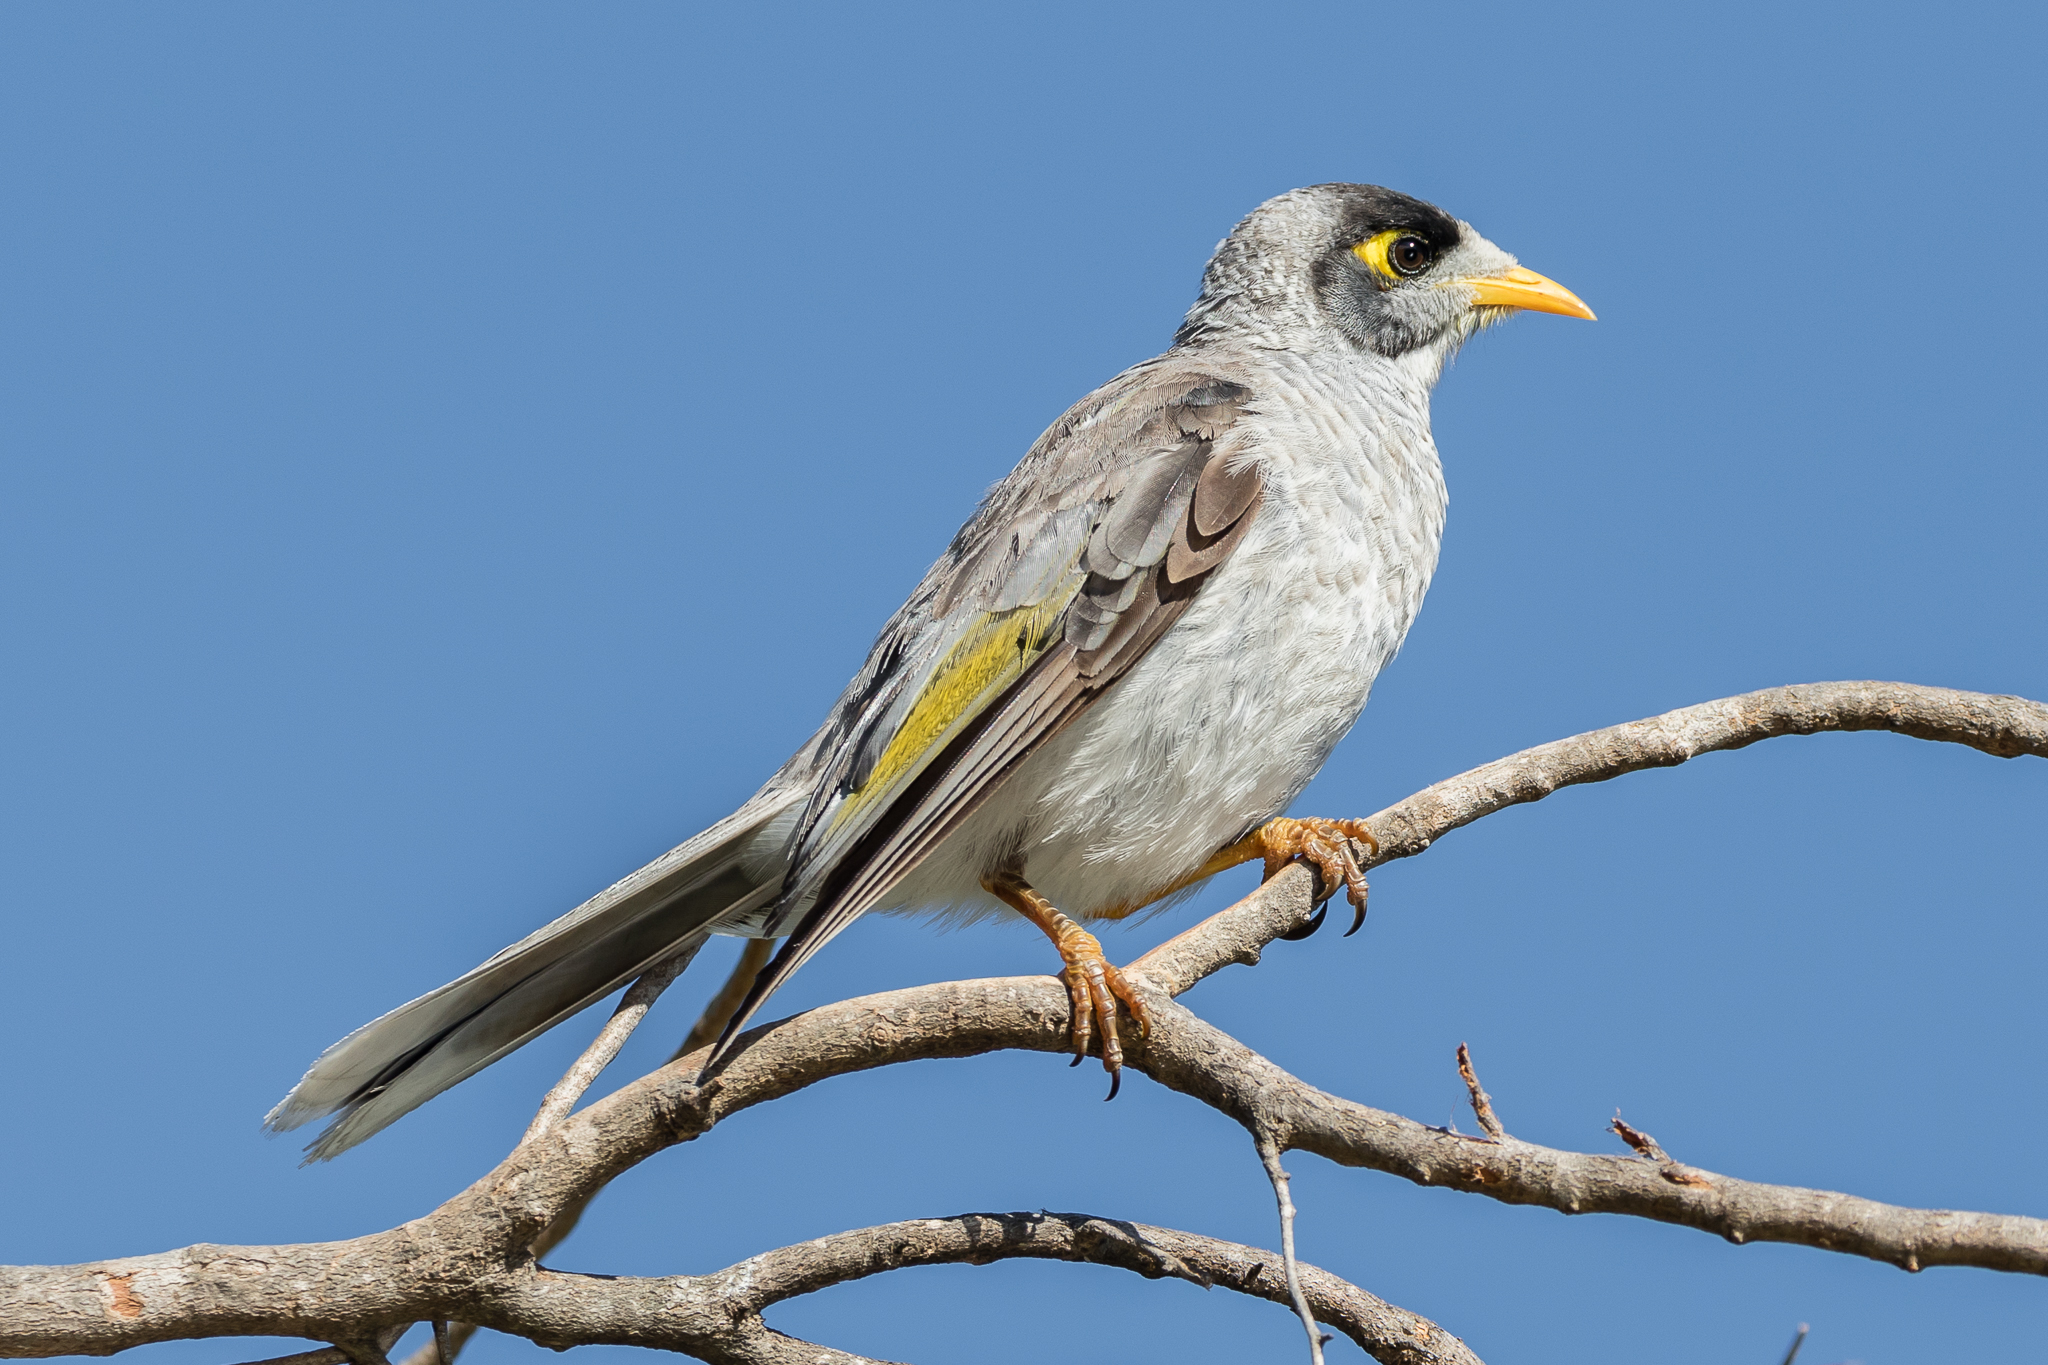 Second most common bird was the Noisy Miner, the most aggressive of the Honeyeater family; known for chasing other birds and taking prime nesting sites.